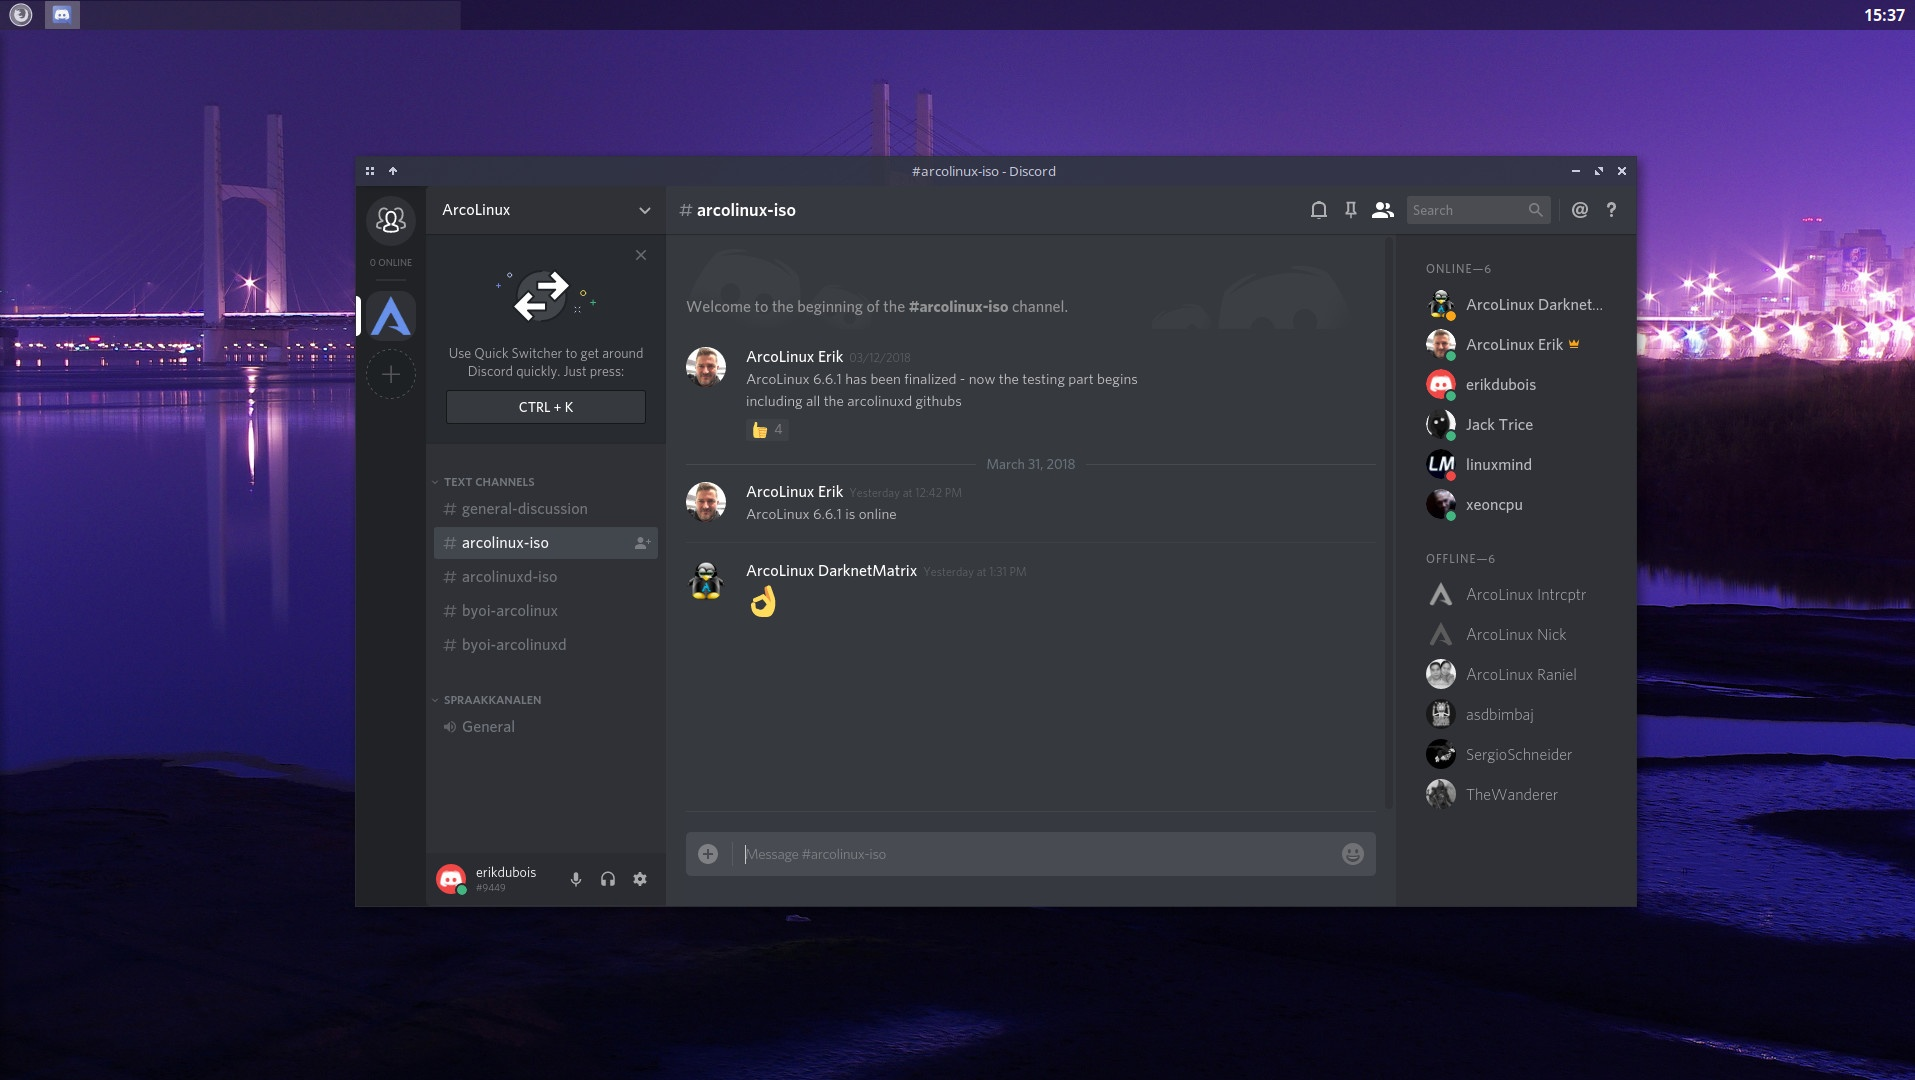 Discord is there to chat with the ArcoLinux team, ArcoLinux Betatesters and the ArcoLinux users